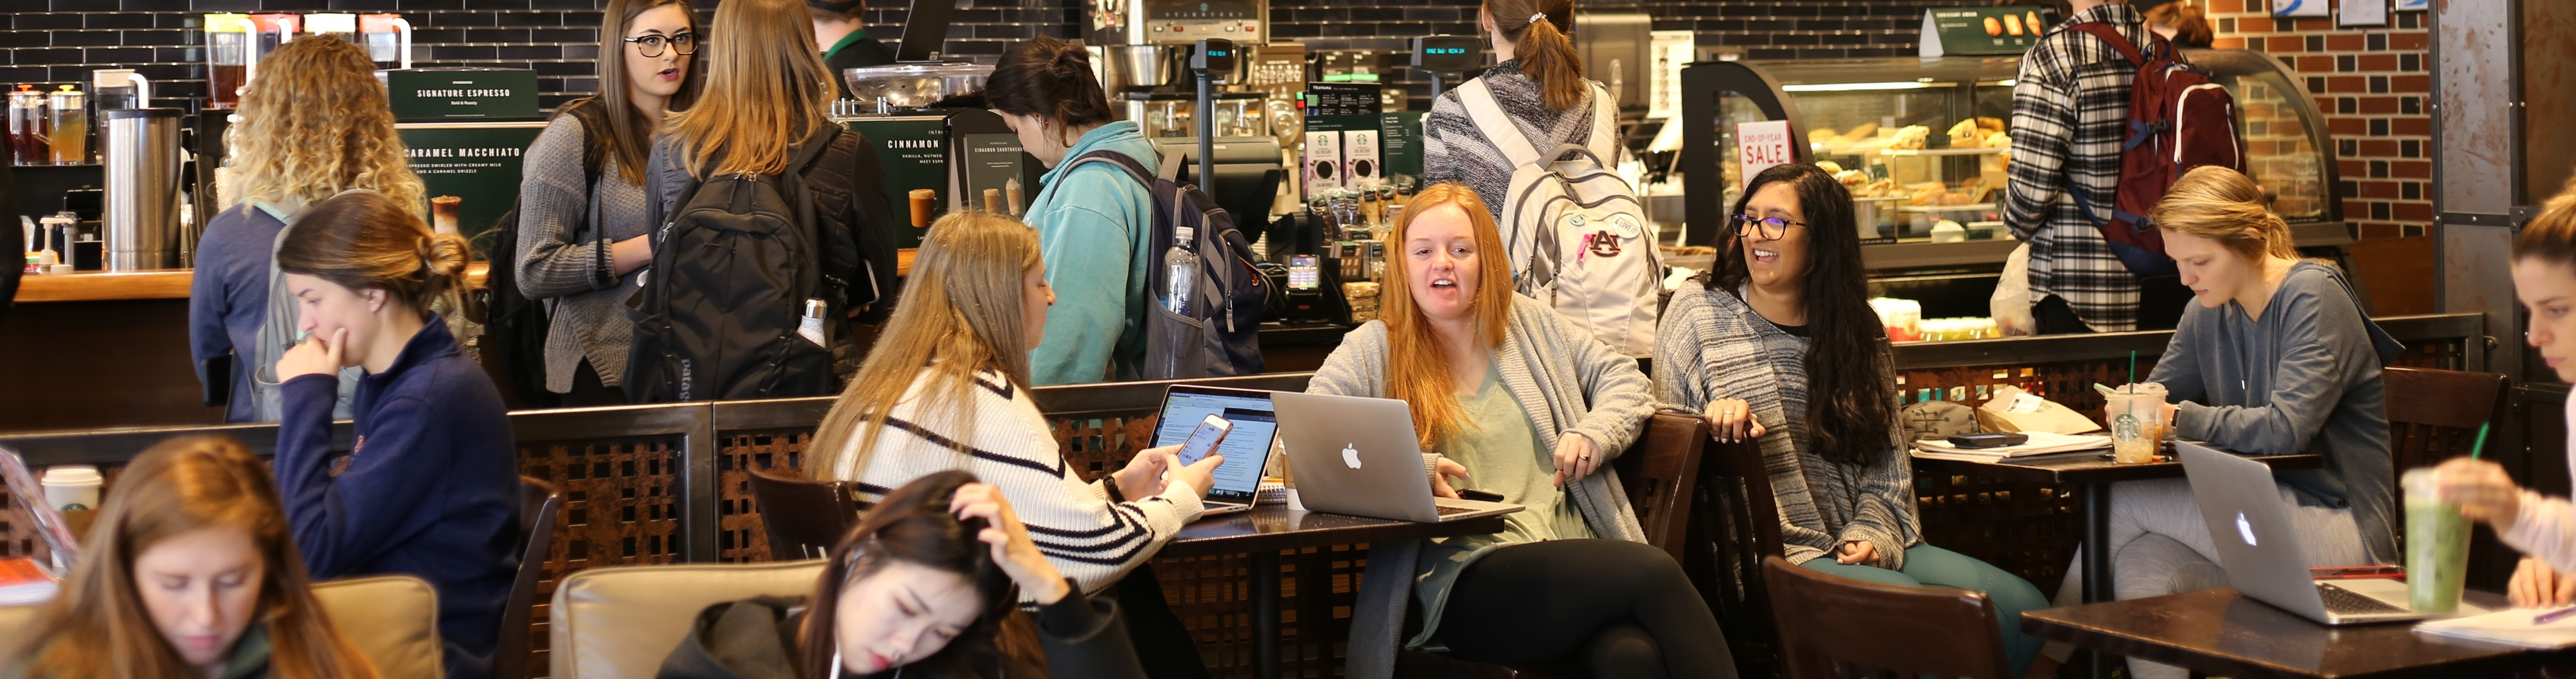 students studying at Starbucks